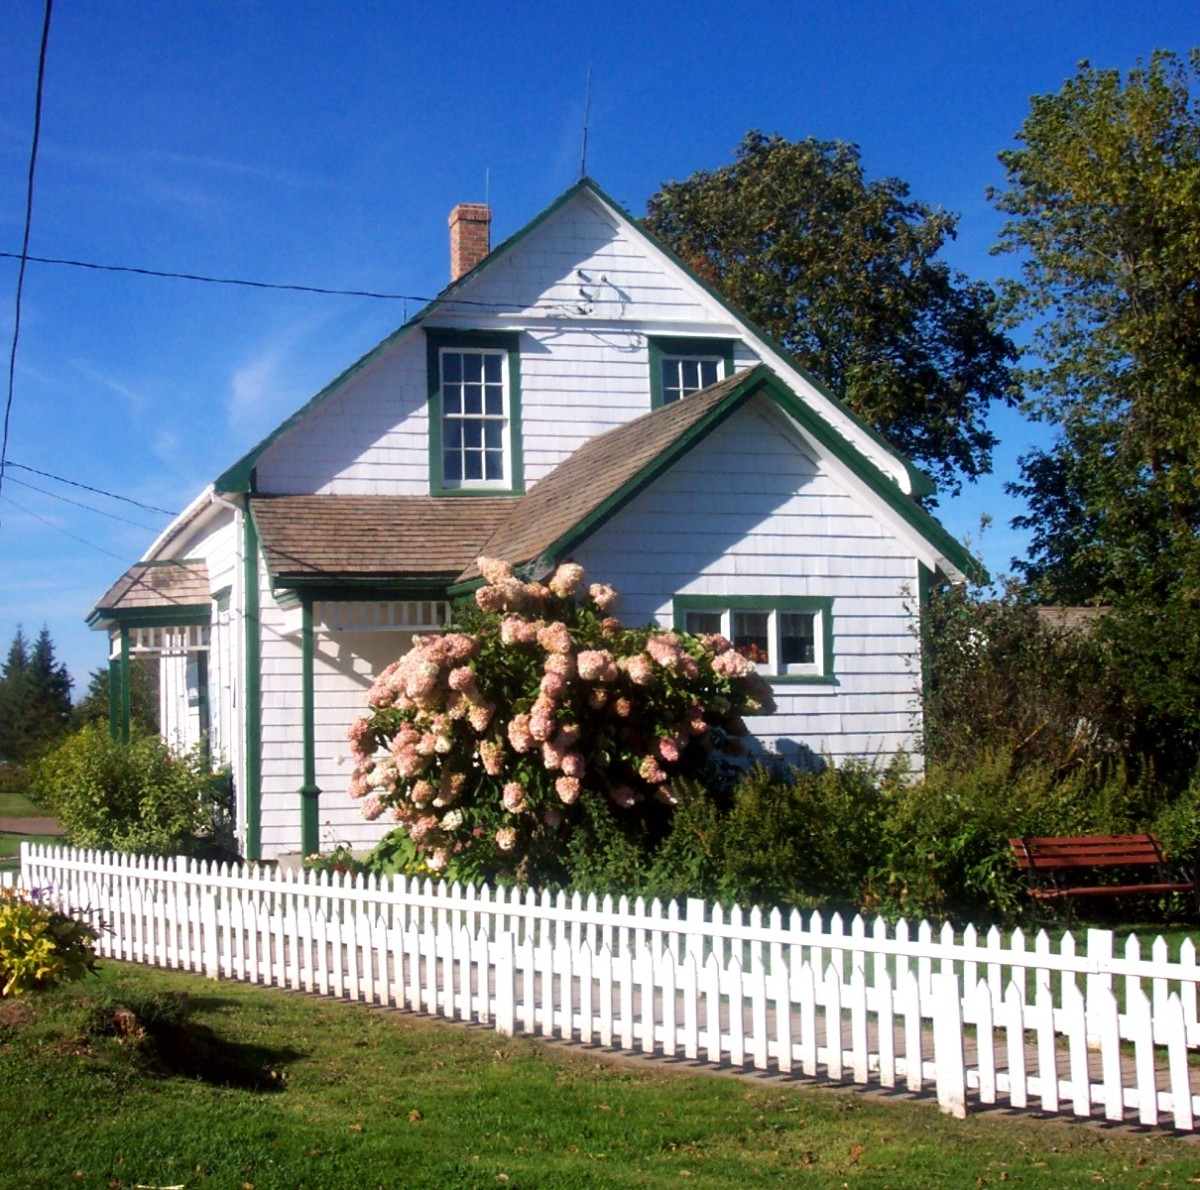 Image: The House in New London, a Short Distance From Cavendish Beach and Green Gables House